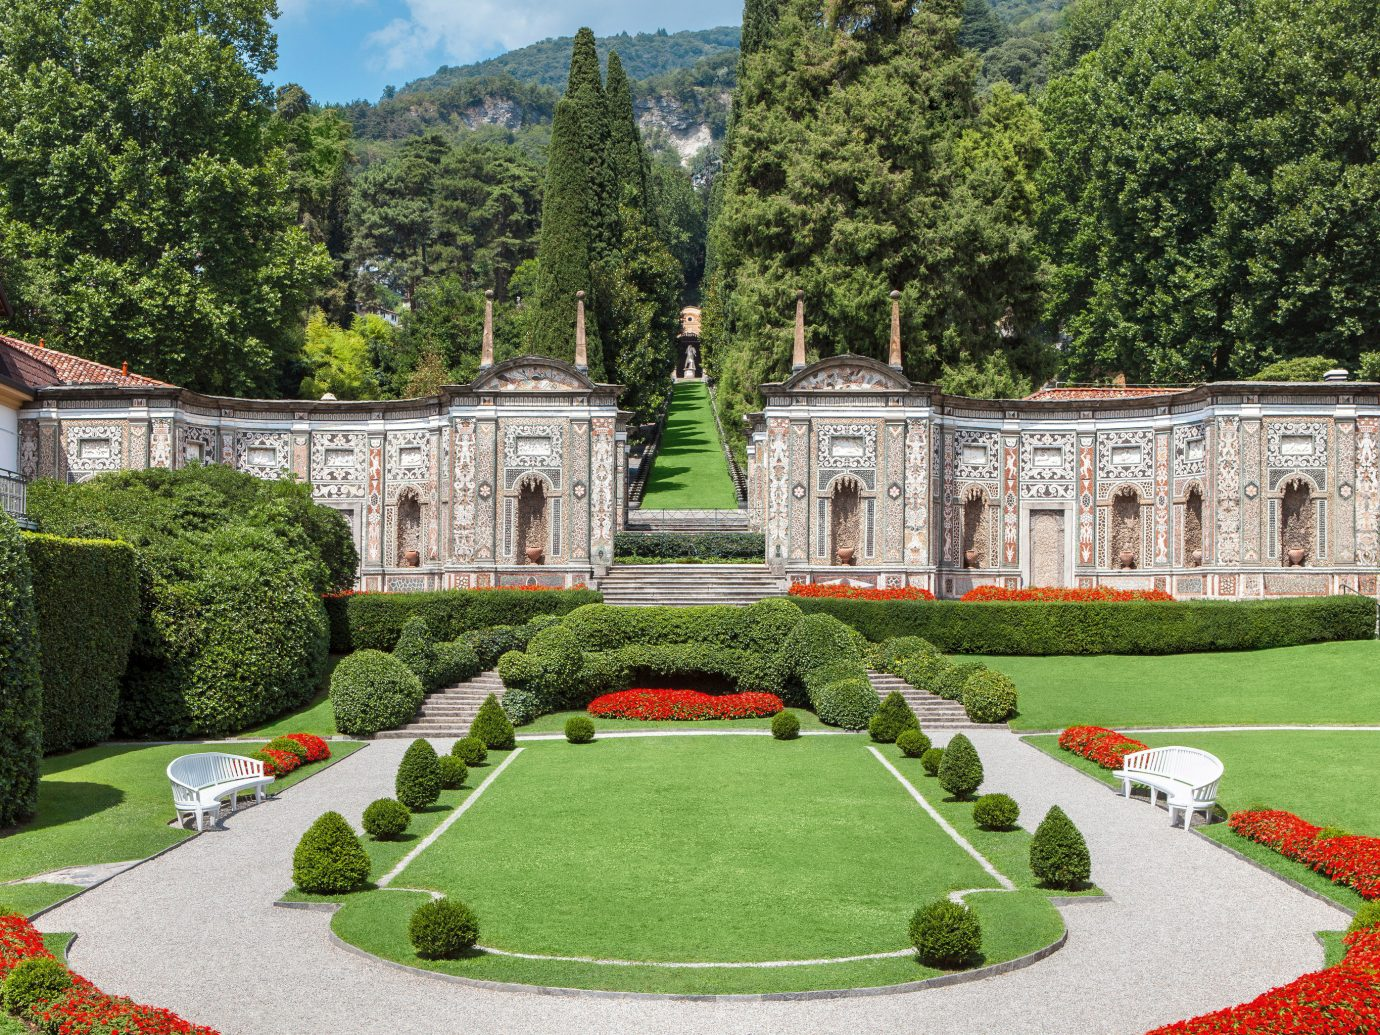 Hotels Luxury Travel tree grass outdoor estate structure stately home château Garden palace lawn mansion park landscape architect Courtyard castle botanical garden monastery manor house old surrounded lush colonnade